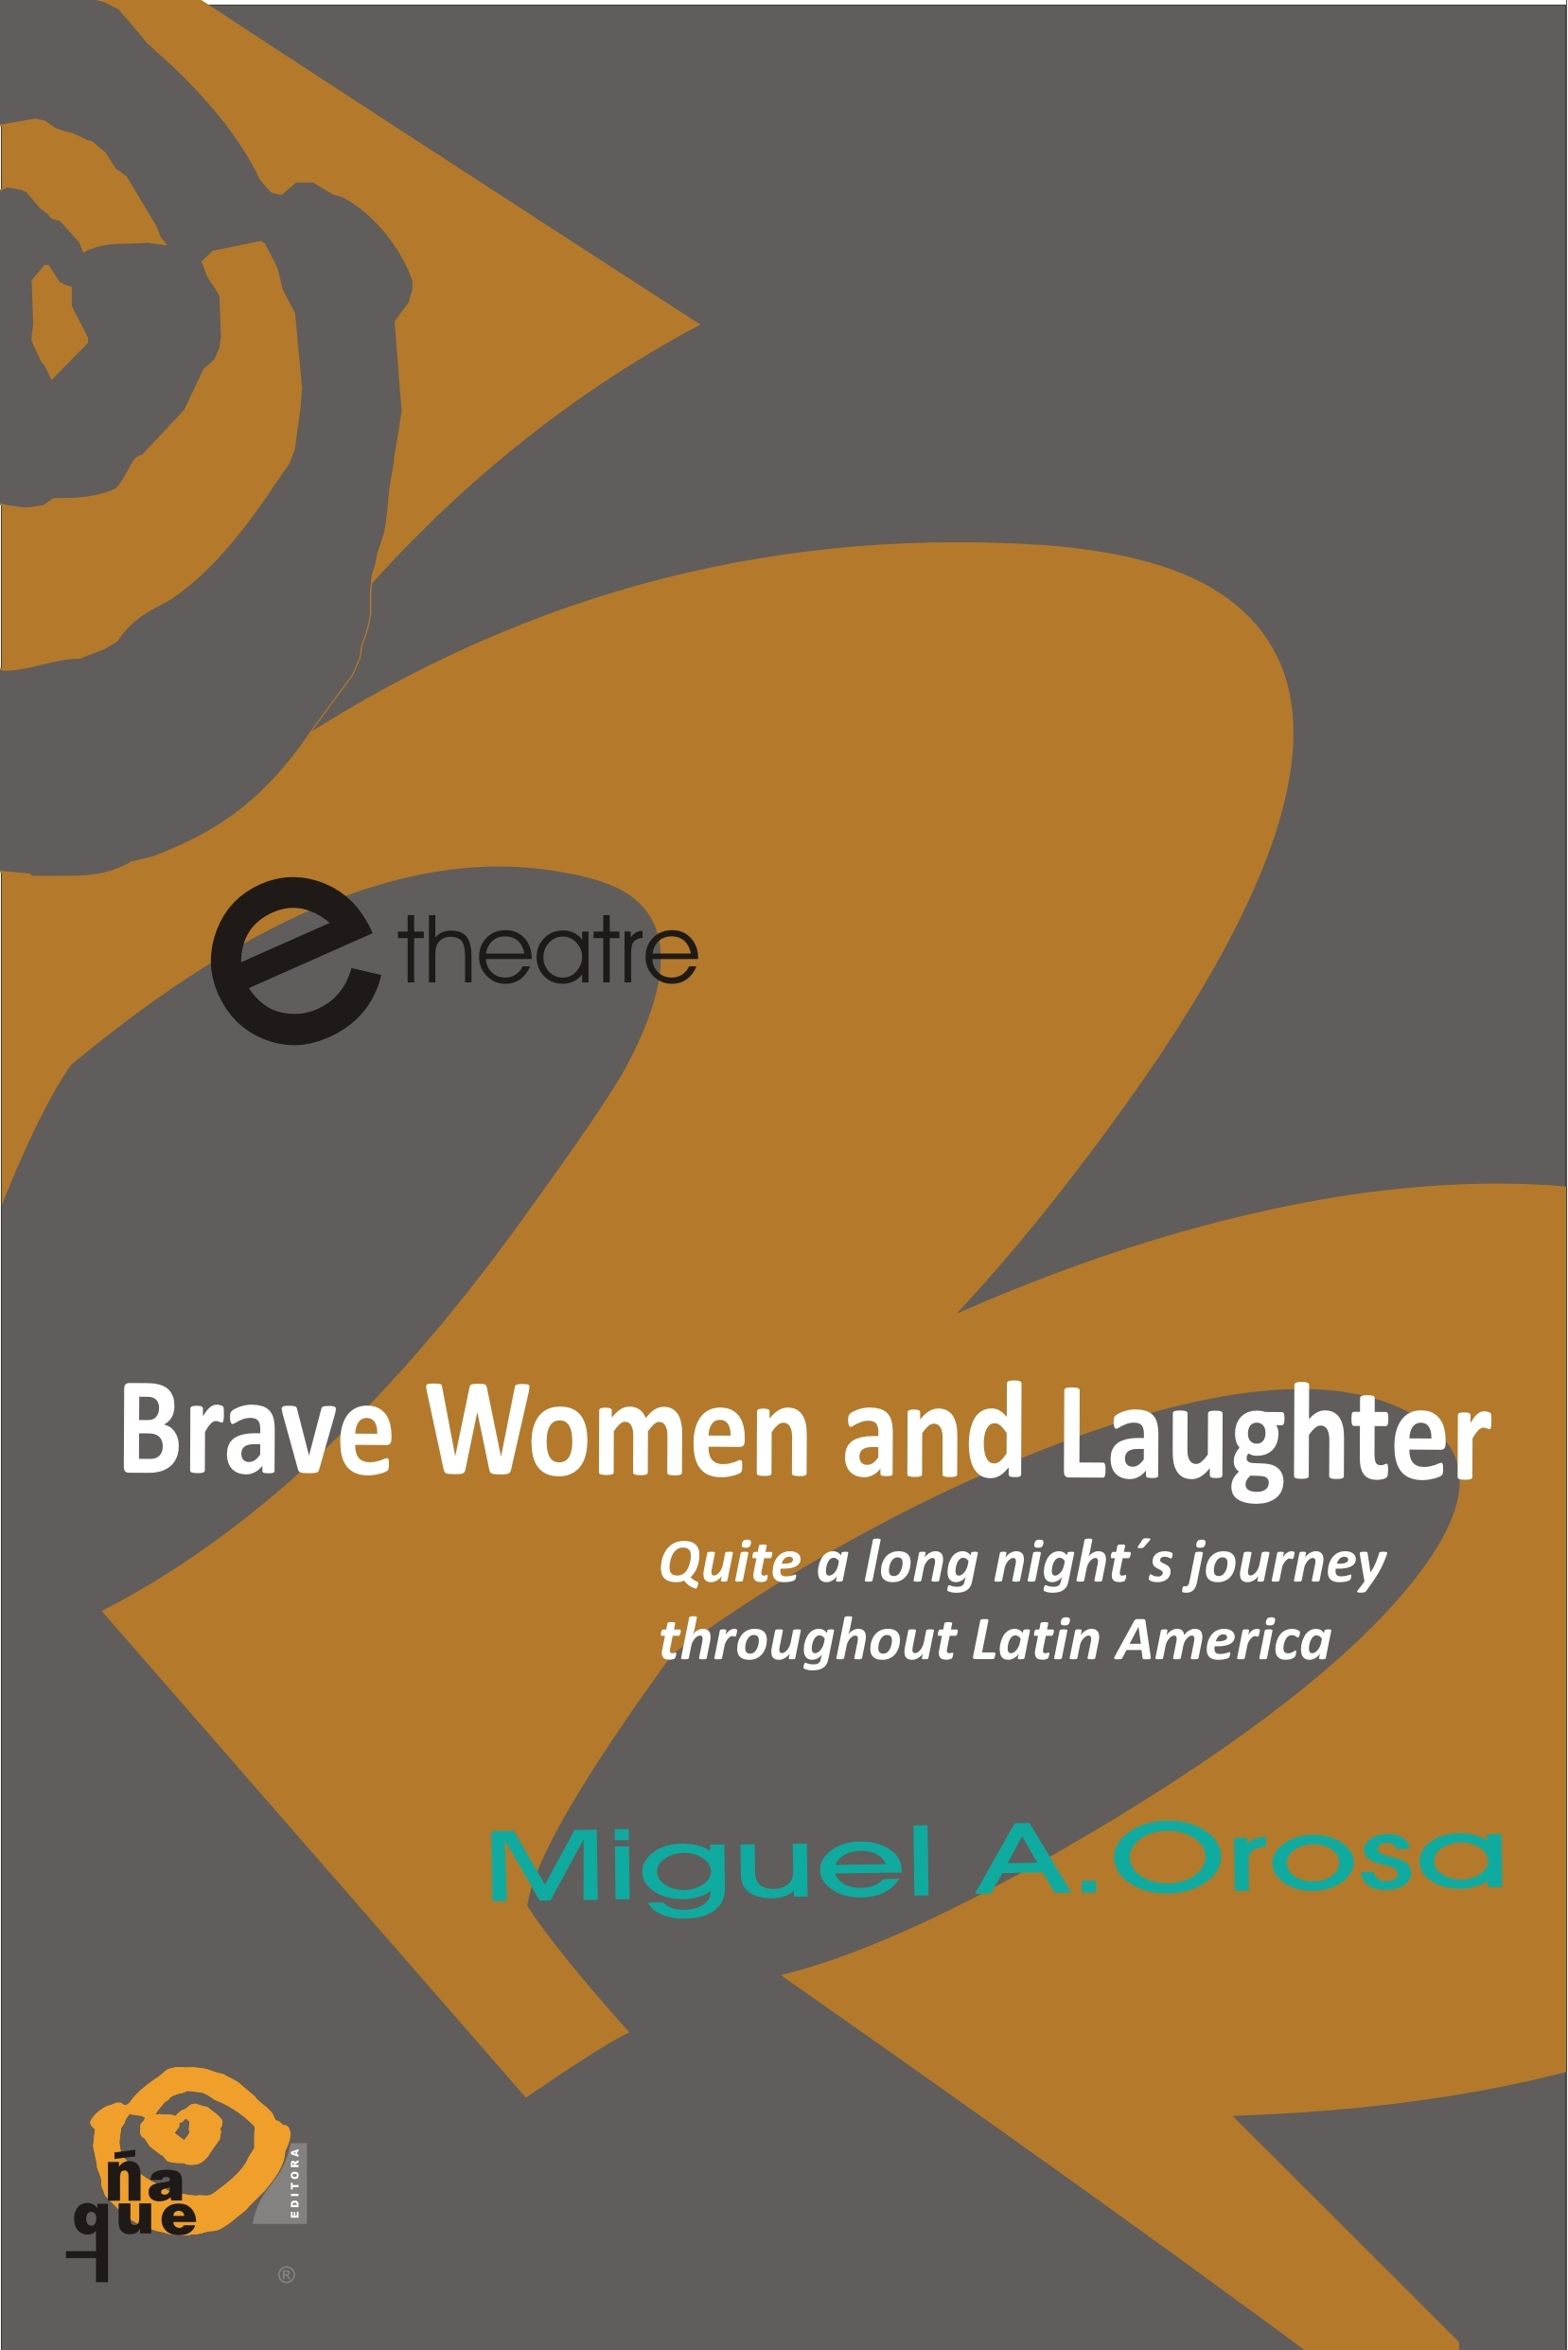 BRAVE WOMEN AND LAUGHTER